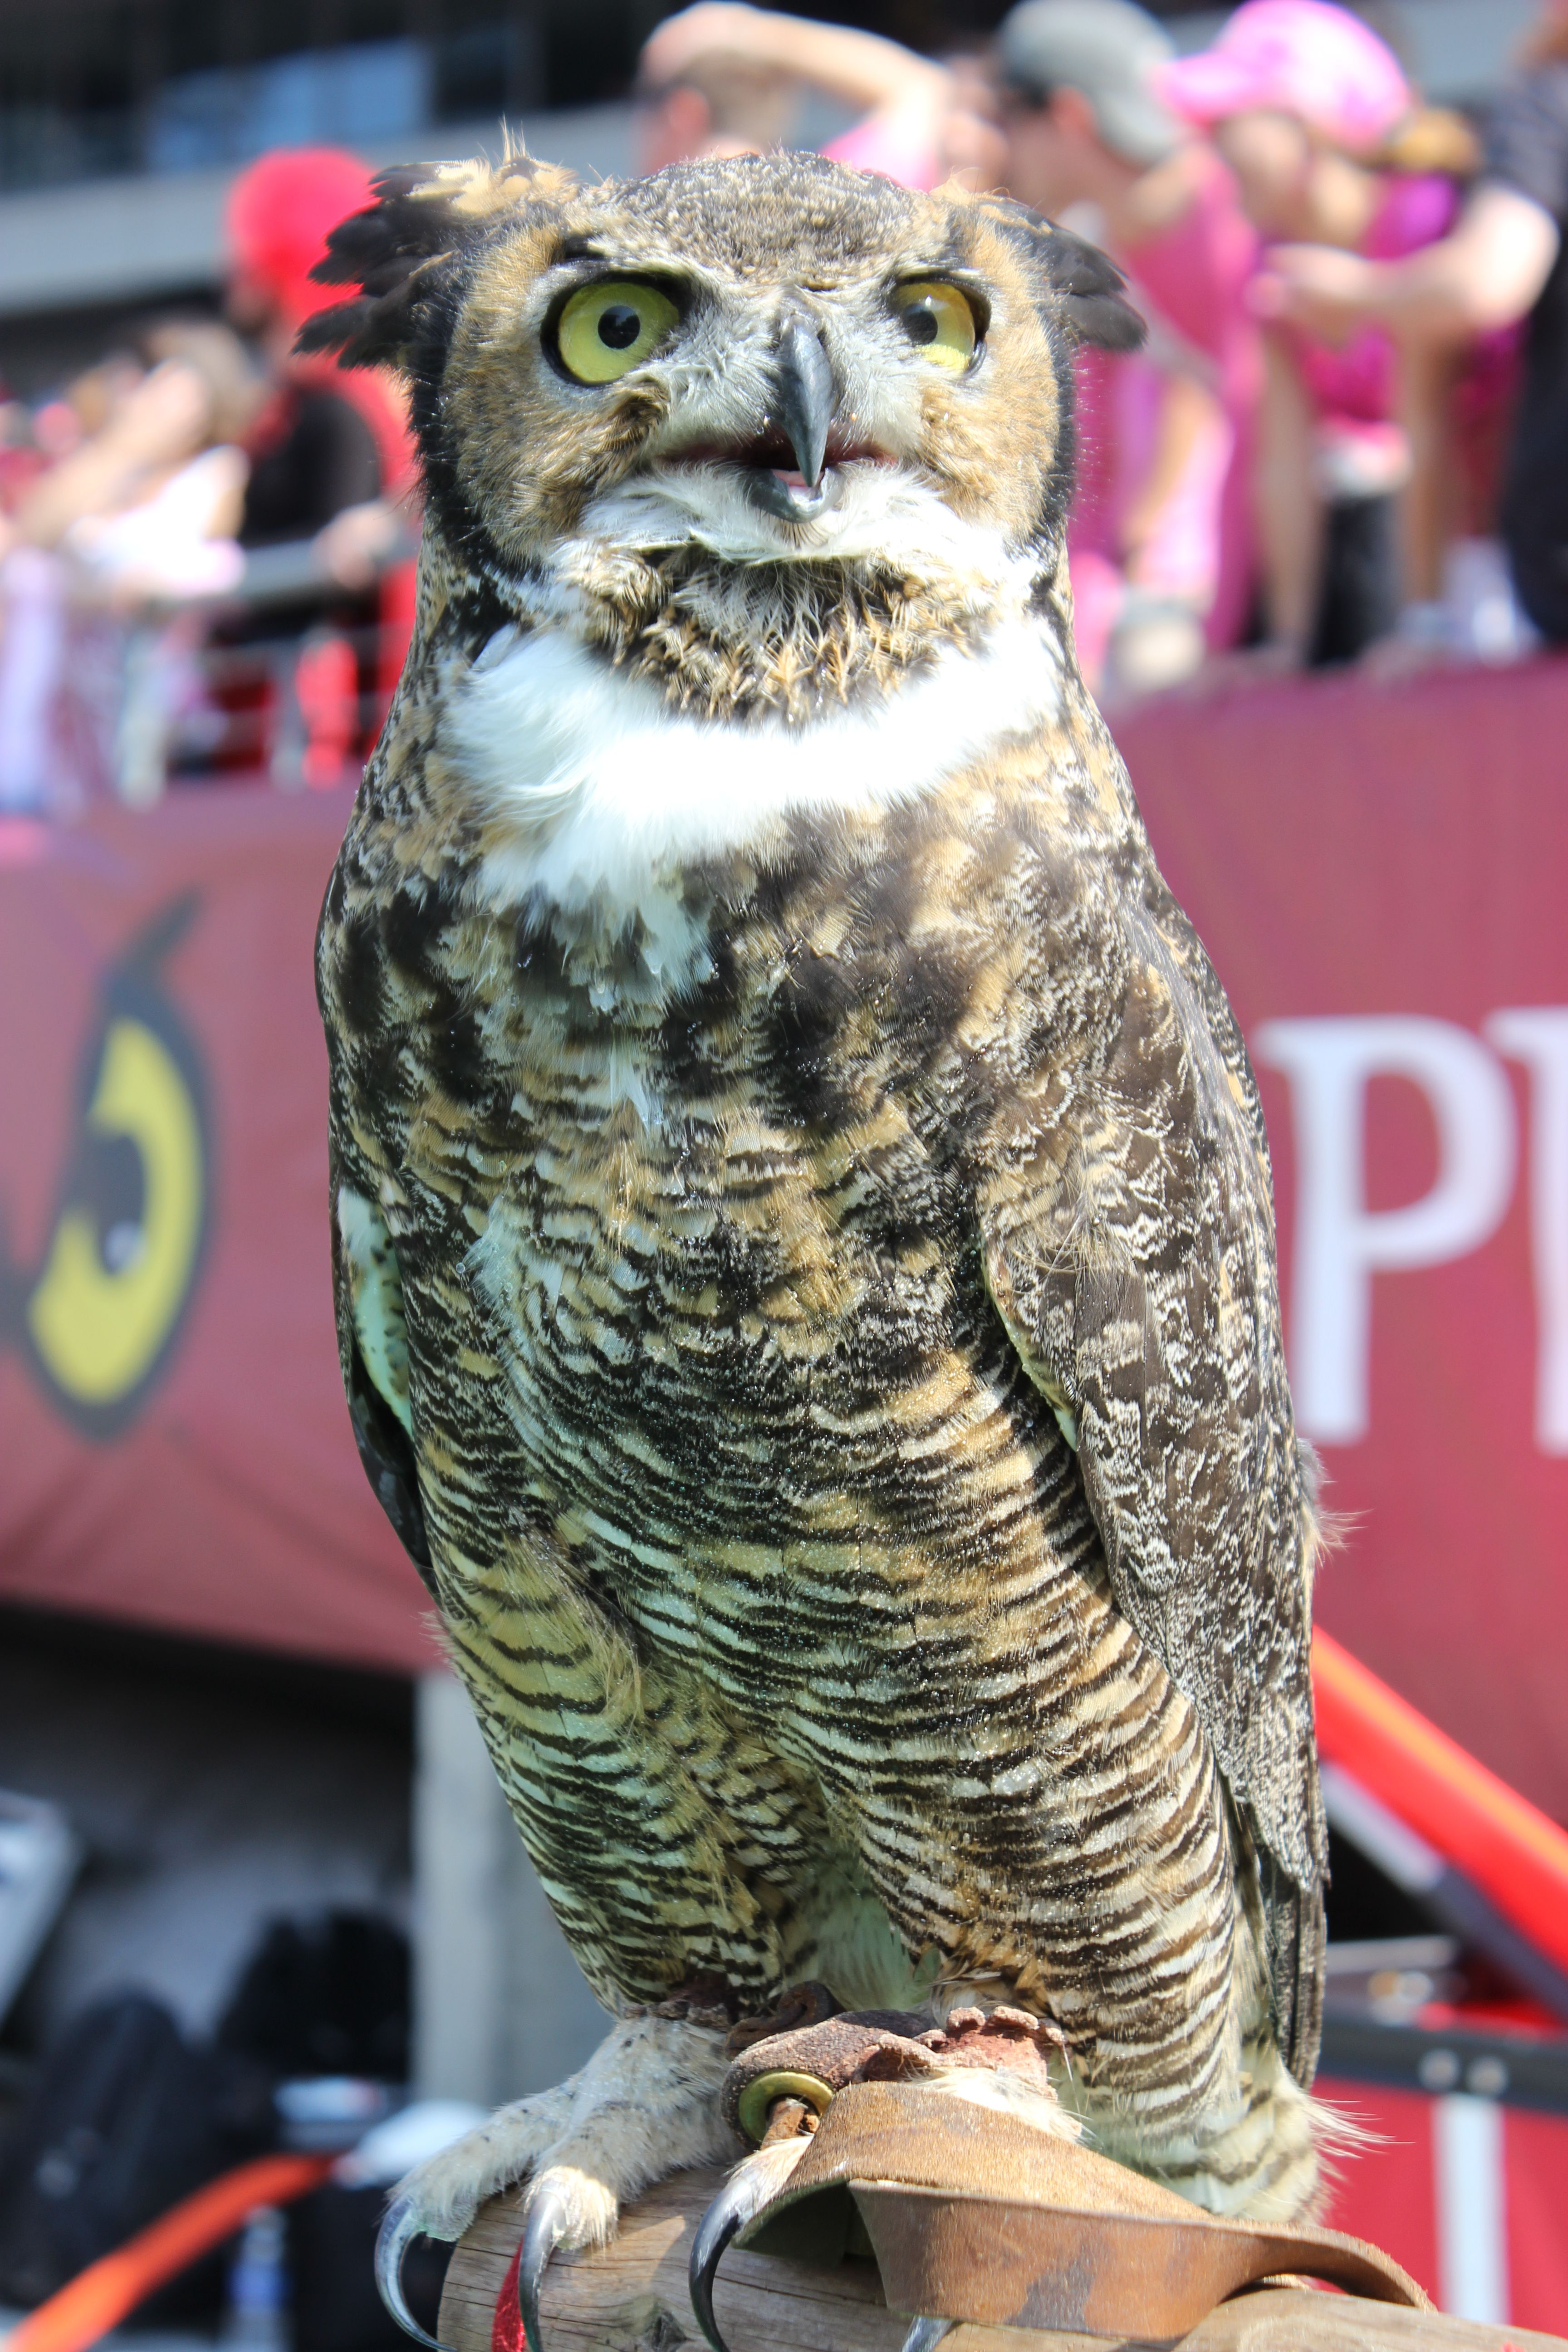 Stella, the Great Horned Owl, is Temple University's mascot! When she's not at the EPZ, you can find her at all of Temple's home football games! Go Owls!